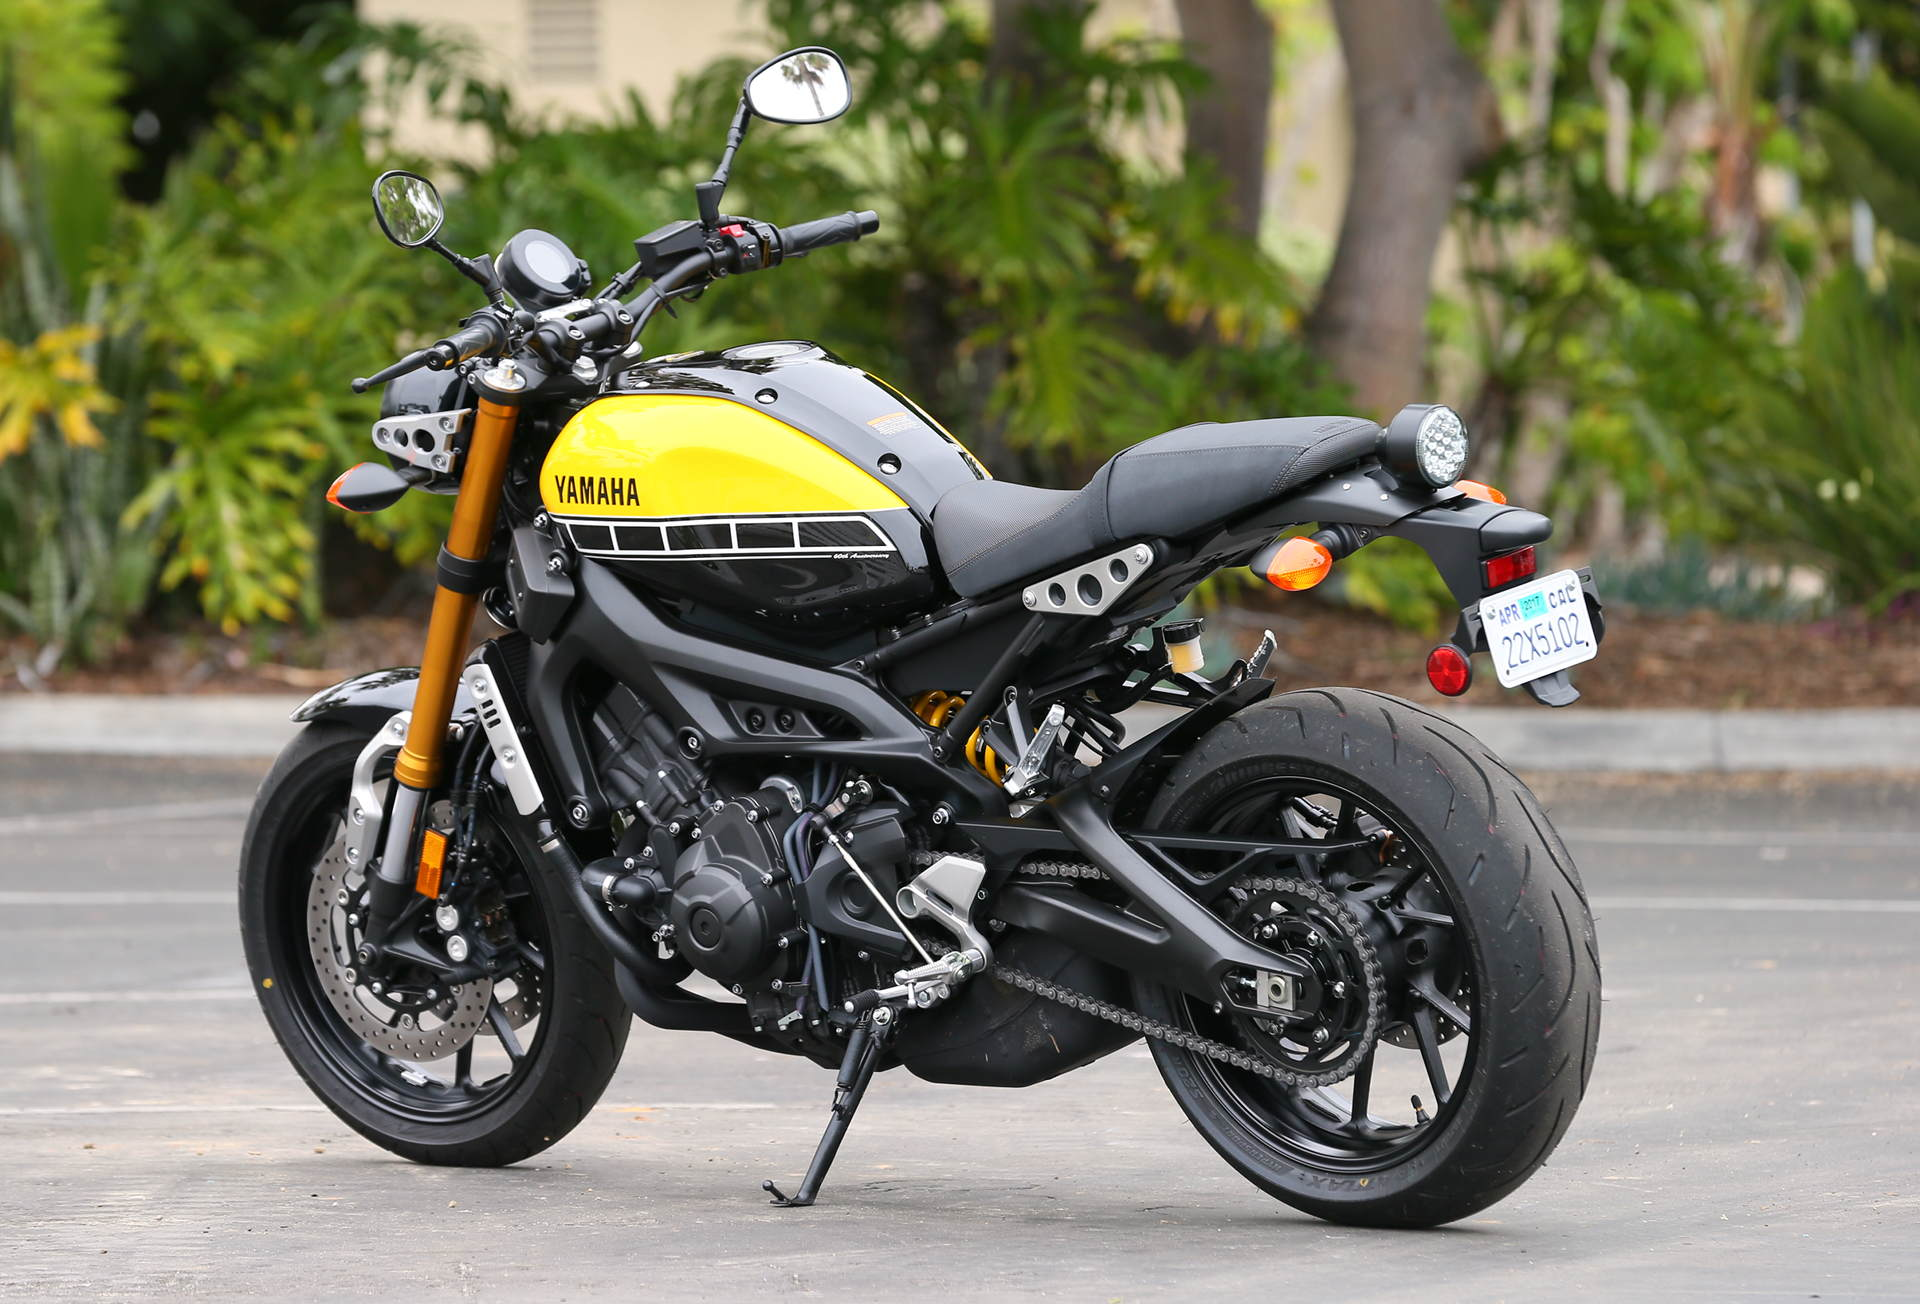 2016 Yamaha XSR900 MD First Ride MotorcycleDaily Motorcycle